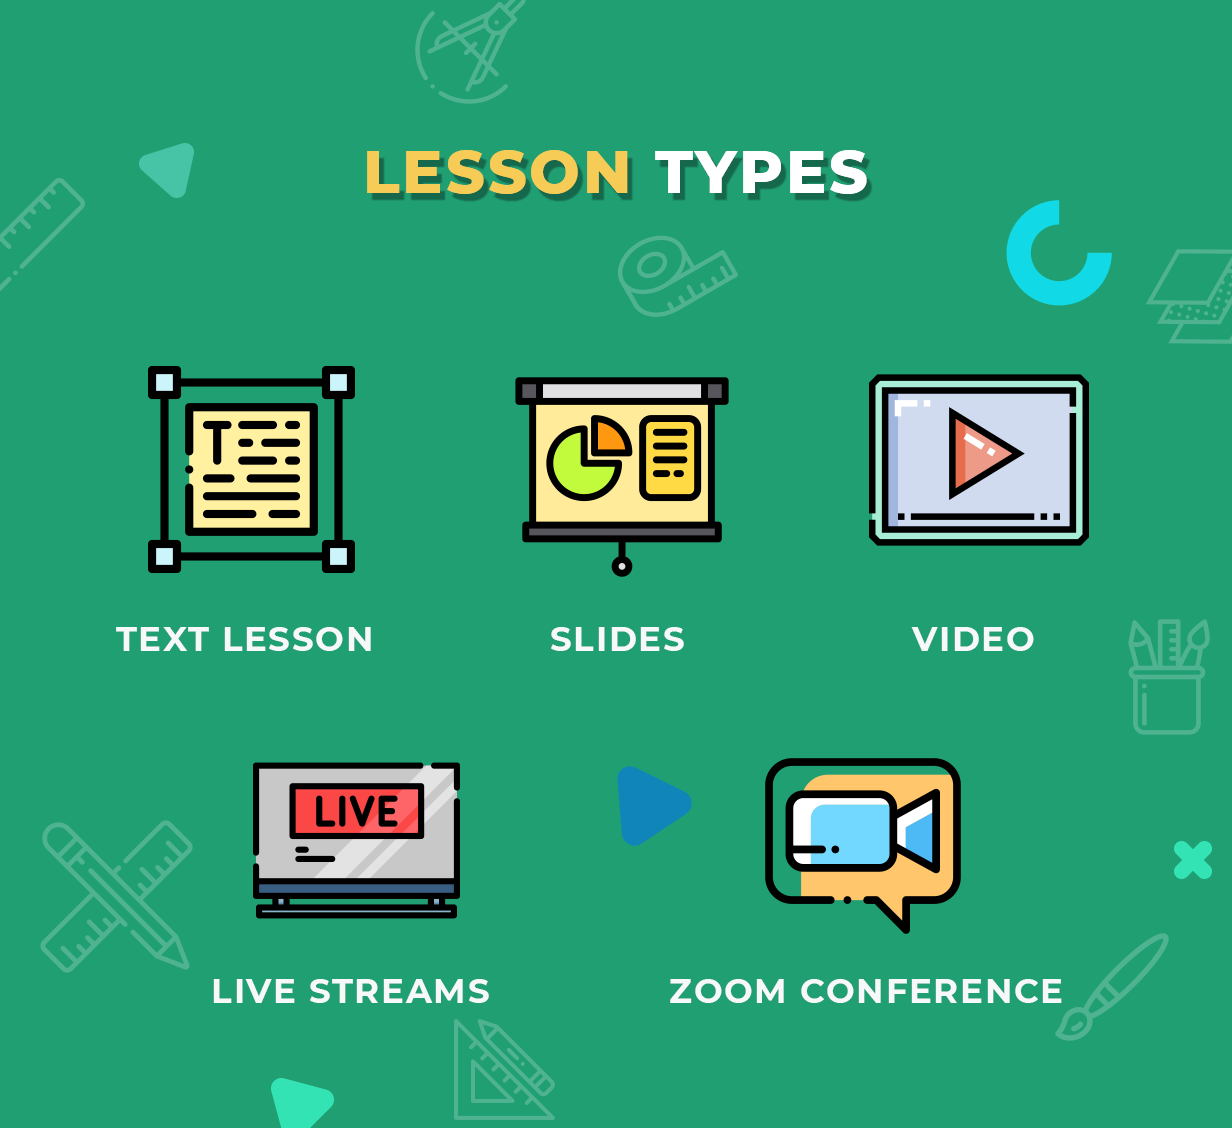 Education WordPress Theme - Lesson Types